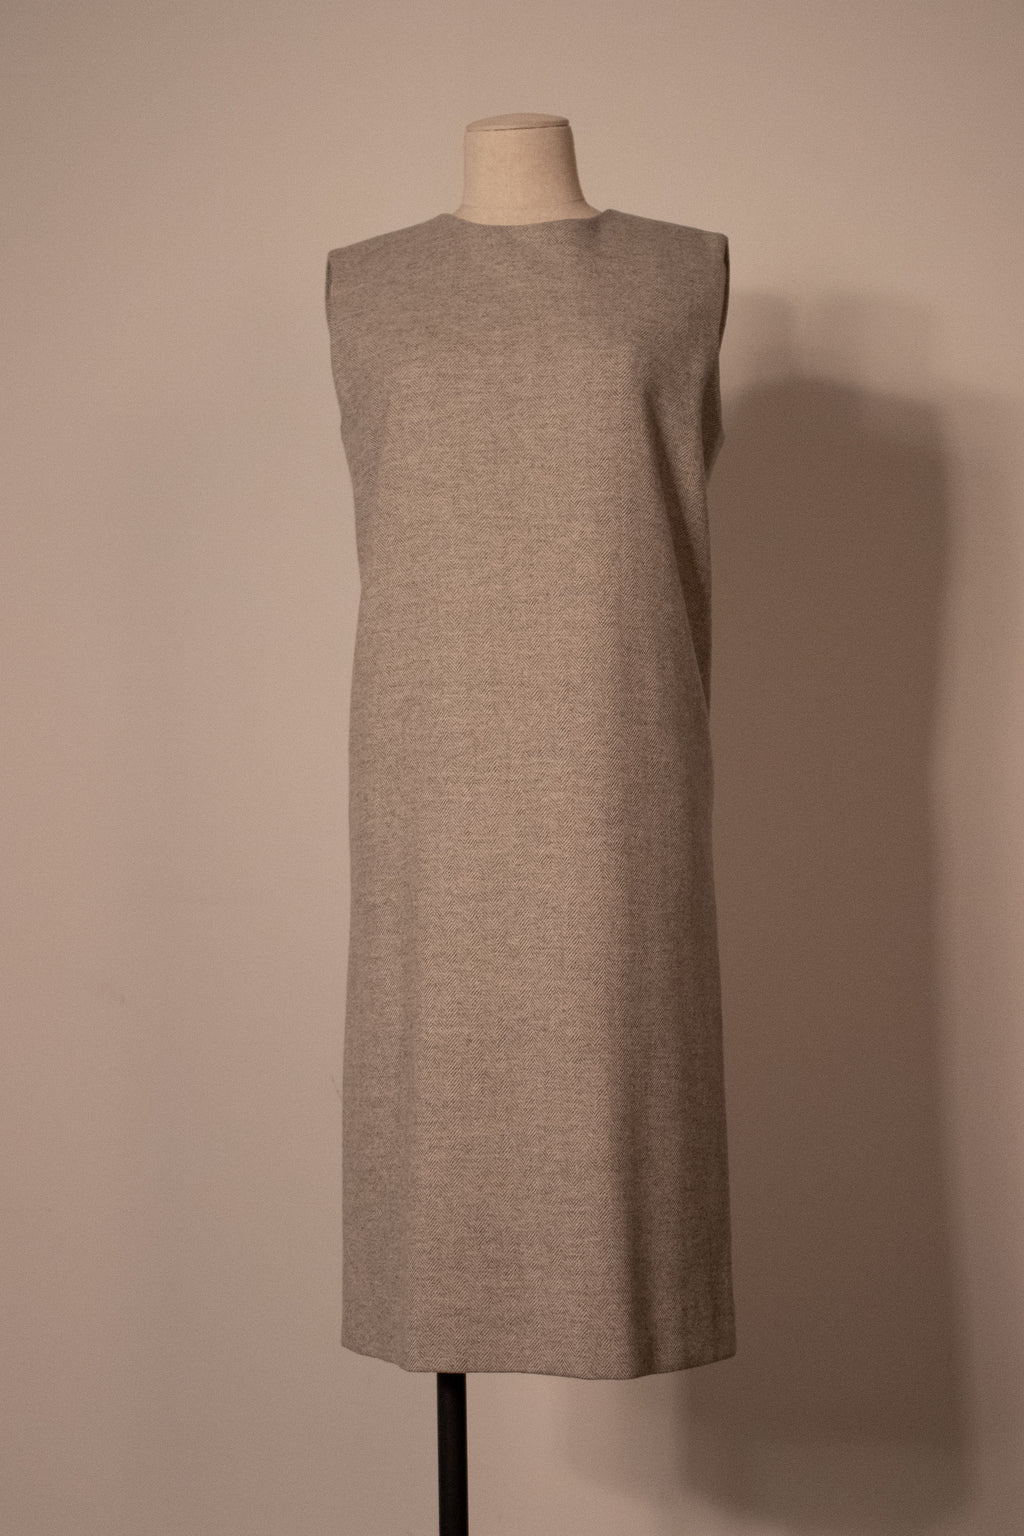 Hermes grey wool chevron sleeveless dress